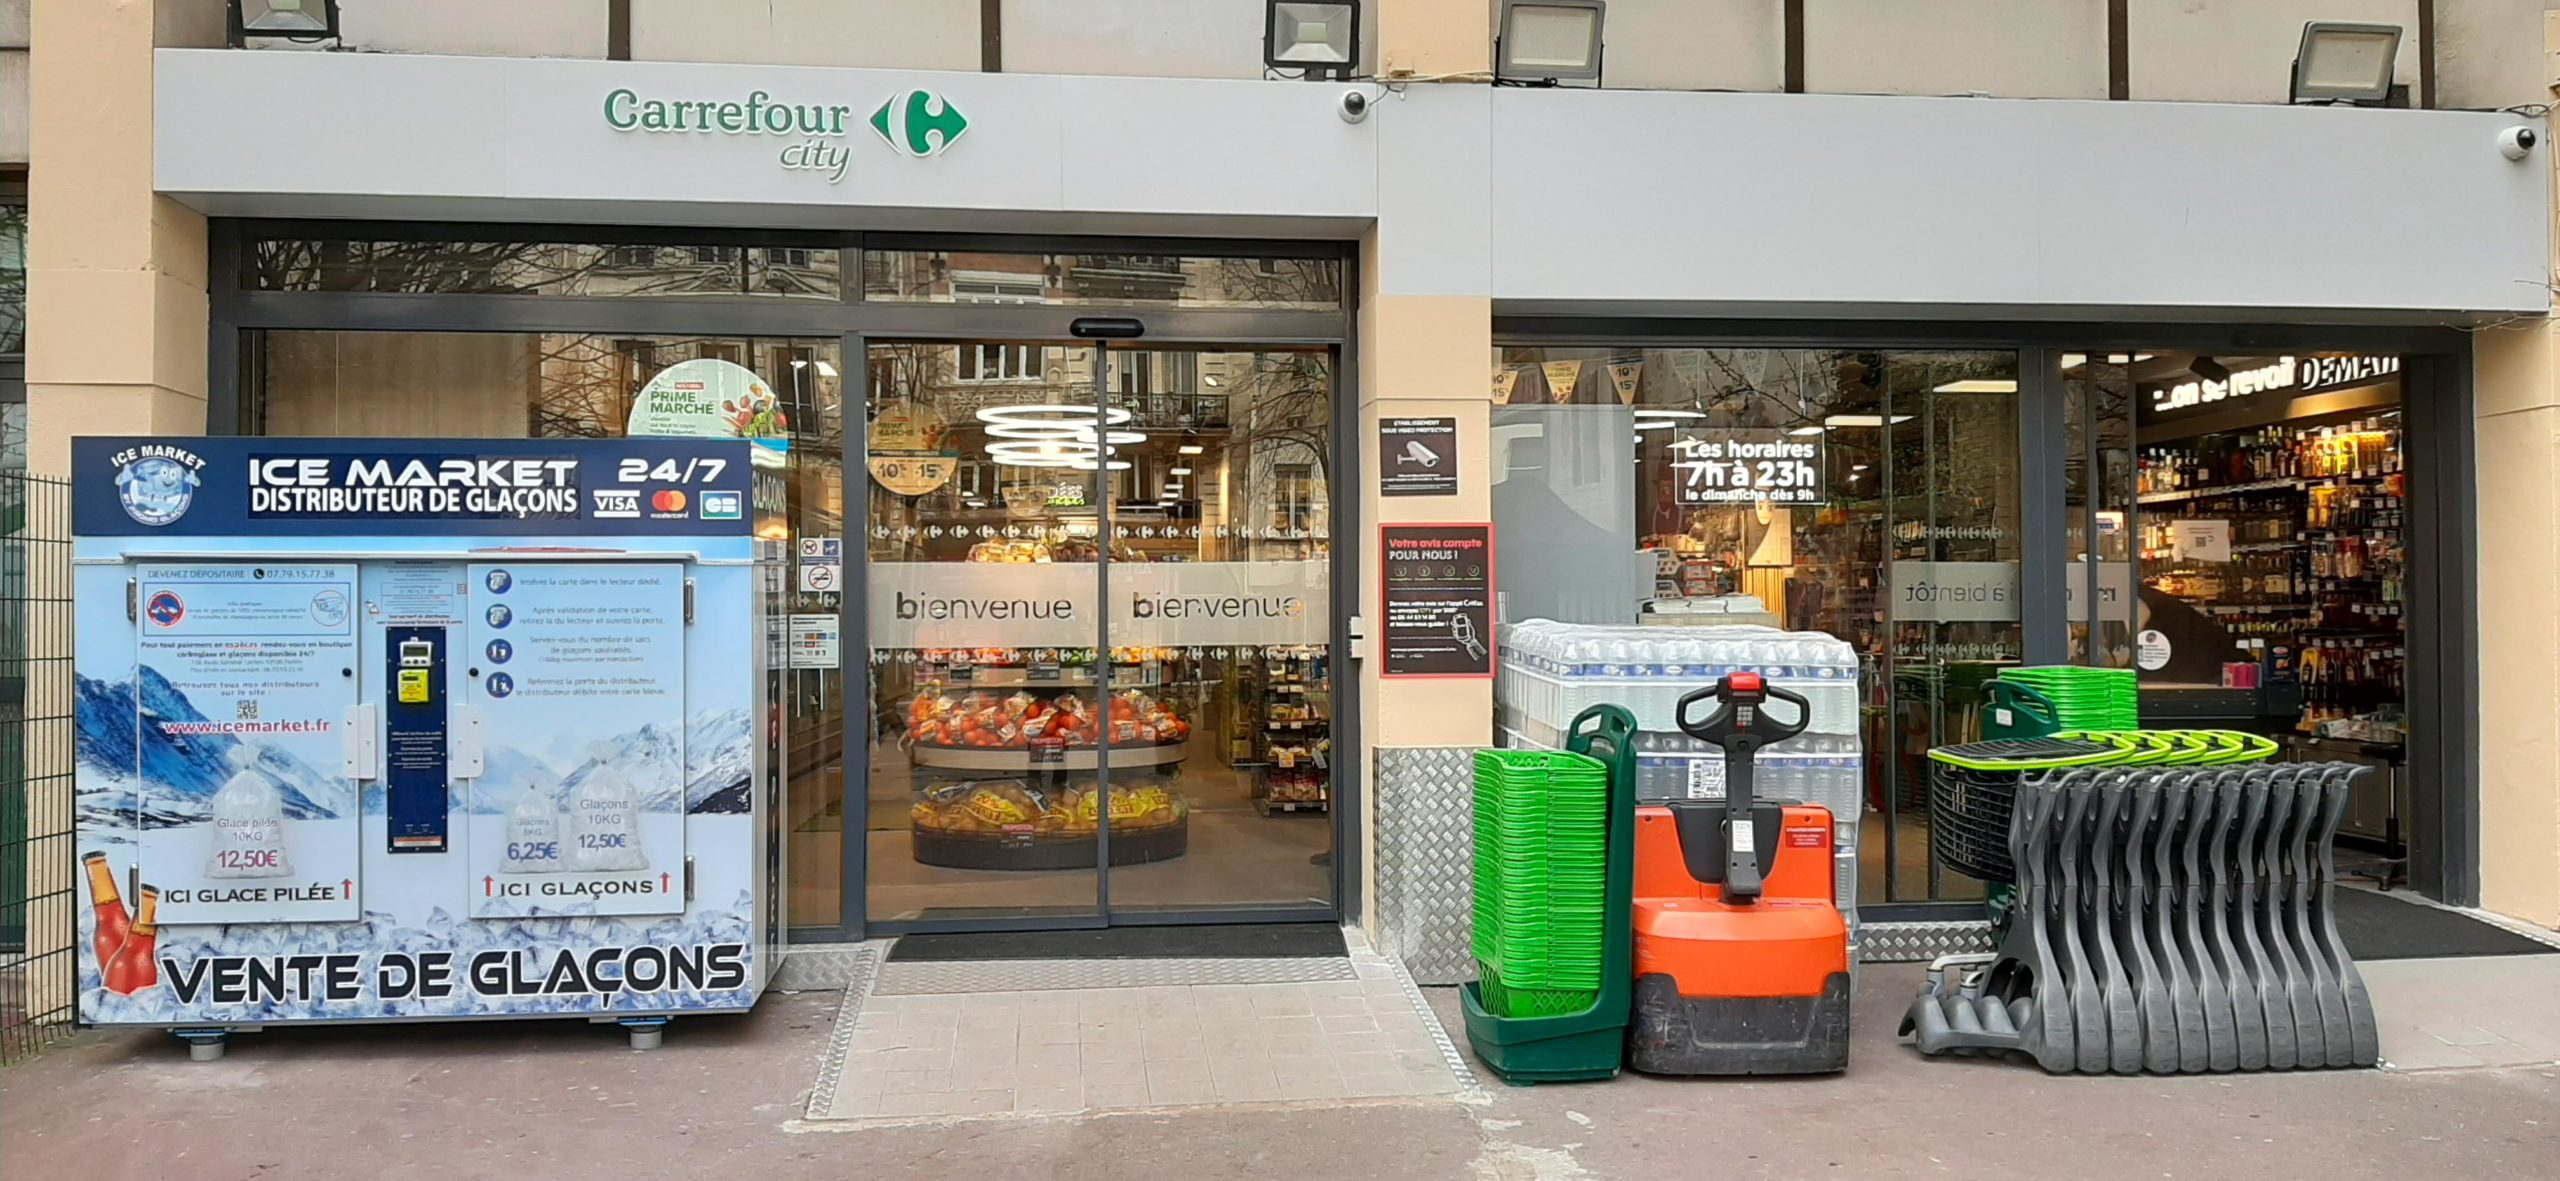 Distribteur-automatique-de-glaçons-et-glace-pilée-carrefour-city-Paris18e